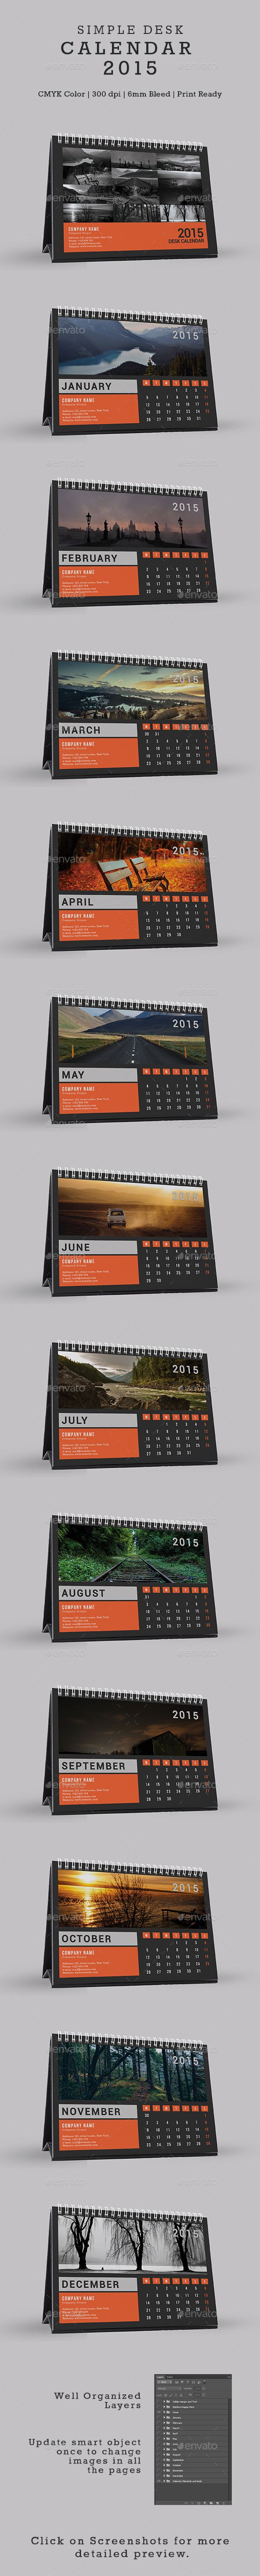 Simple Desk Calendar 2015 Template | Buy and Download…